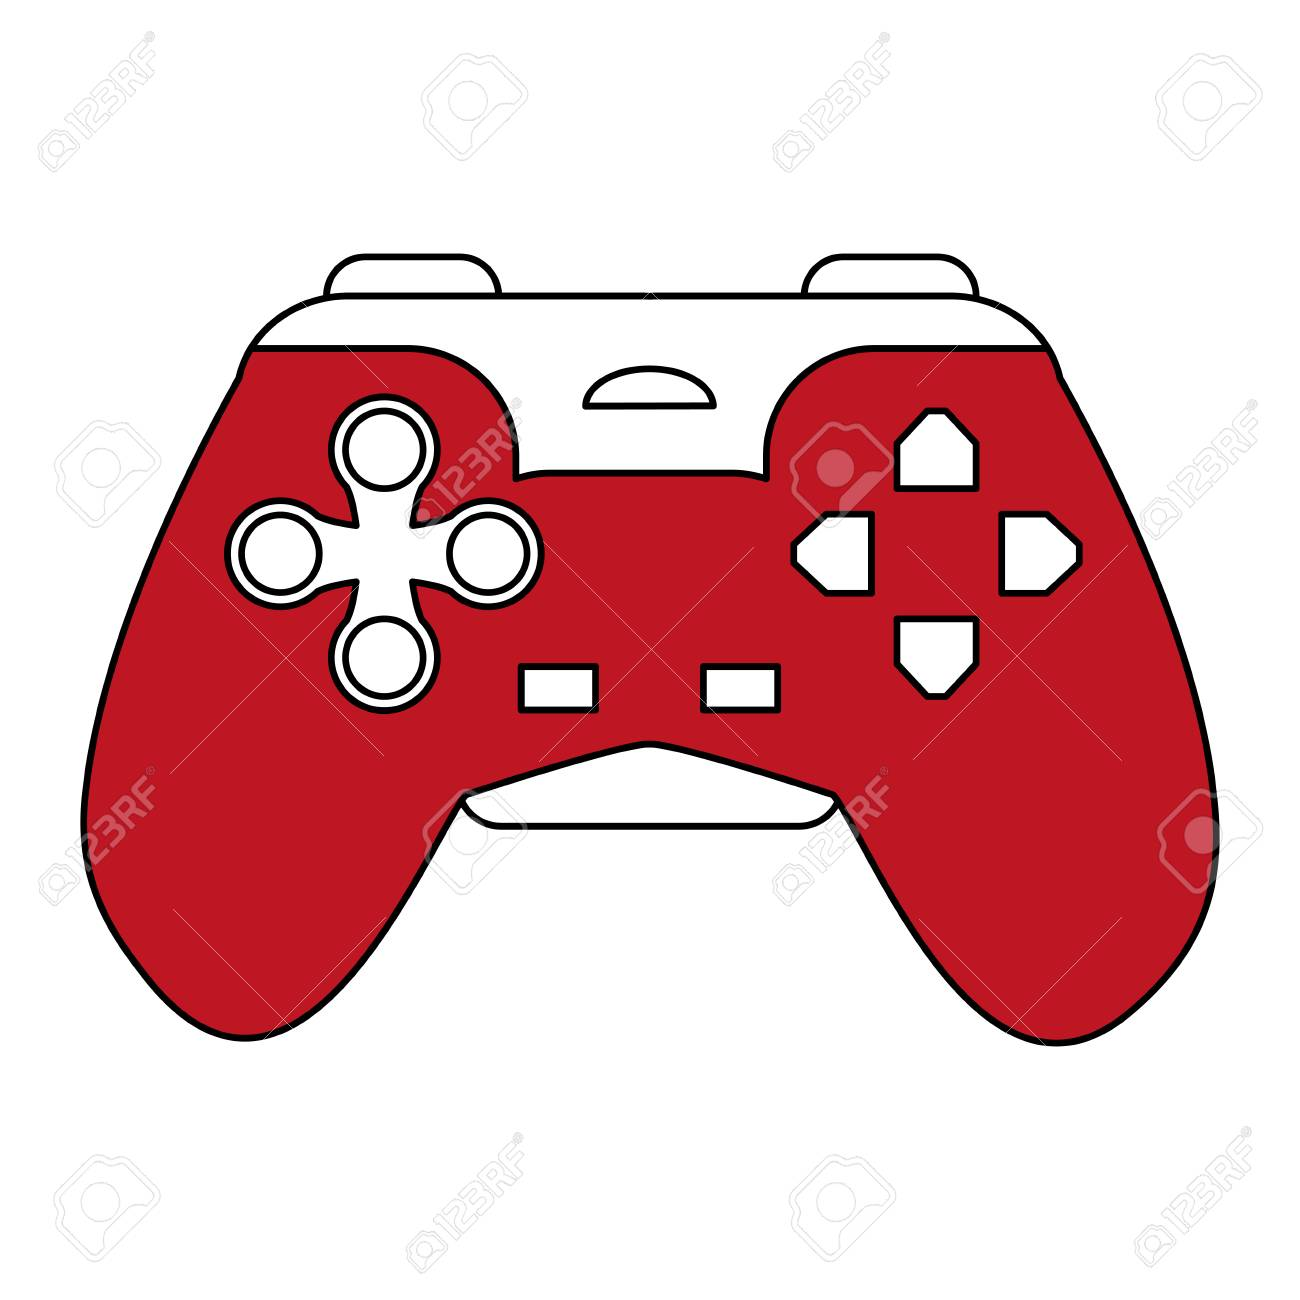 Sketch Color Silhouette Control For Video Games Vector Illustration